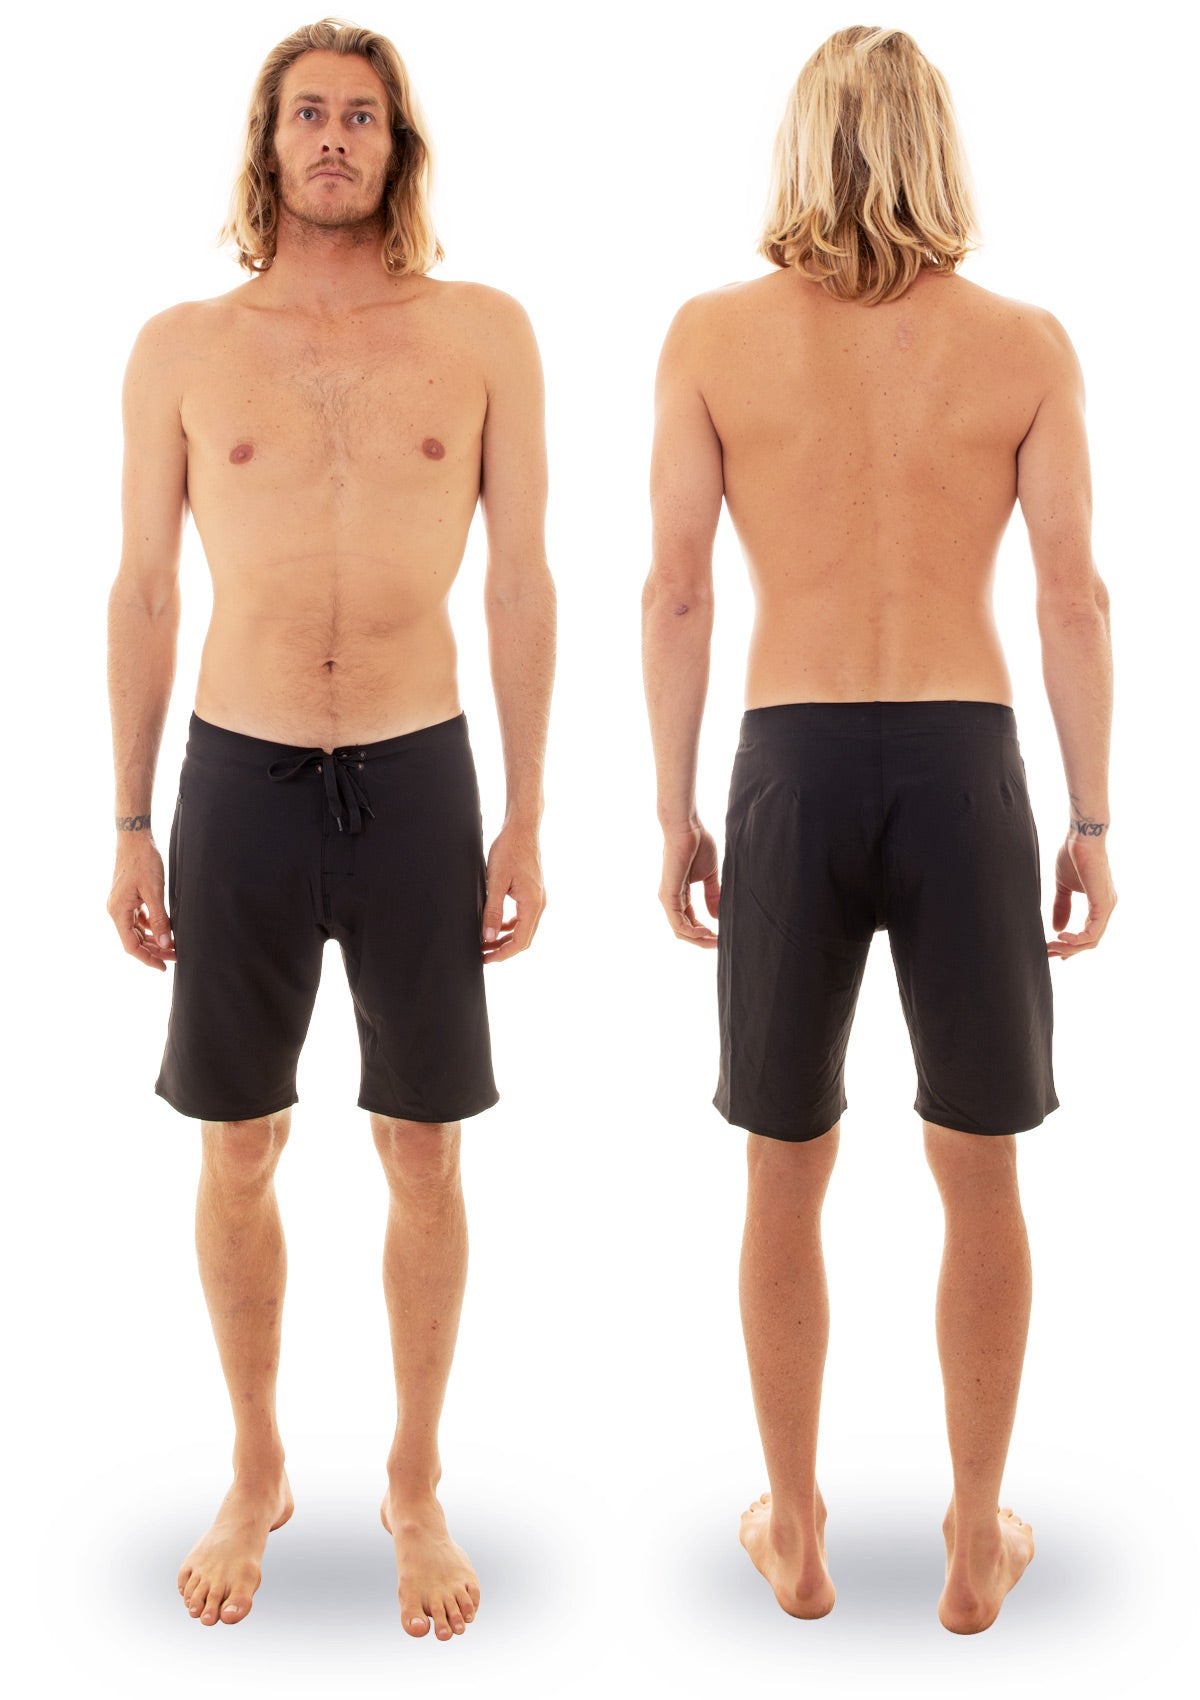 needessentials light weight mens surfing boardshorts non branded black torren martyn